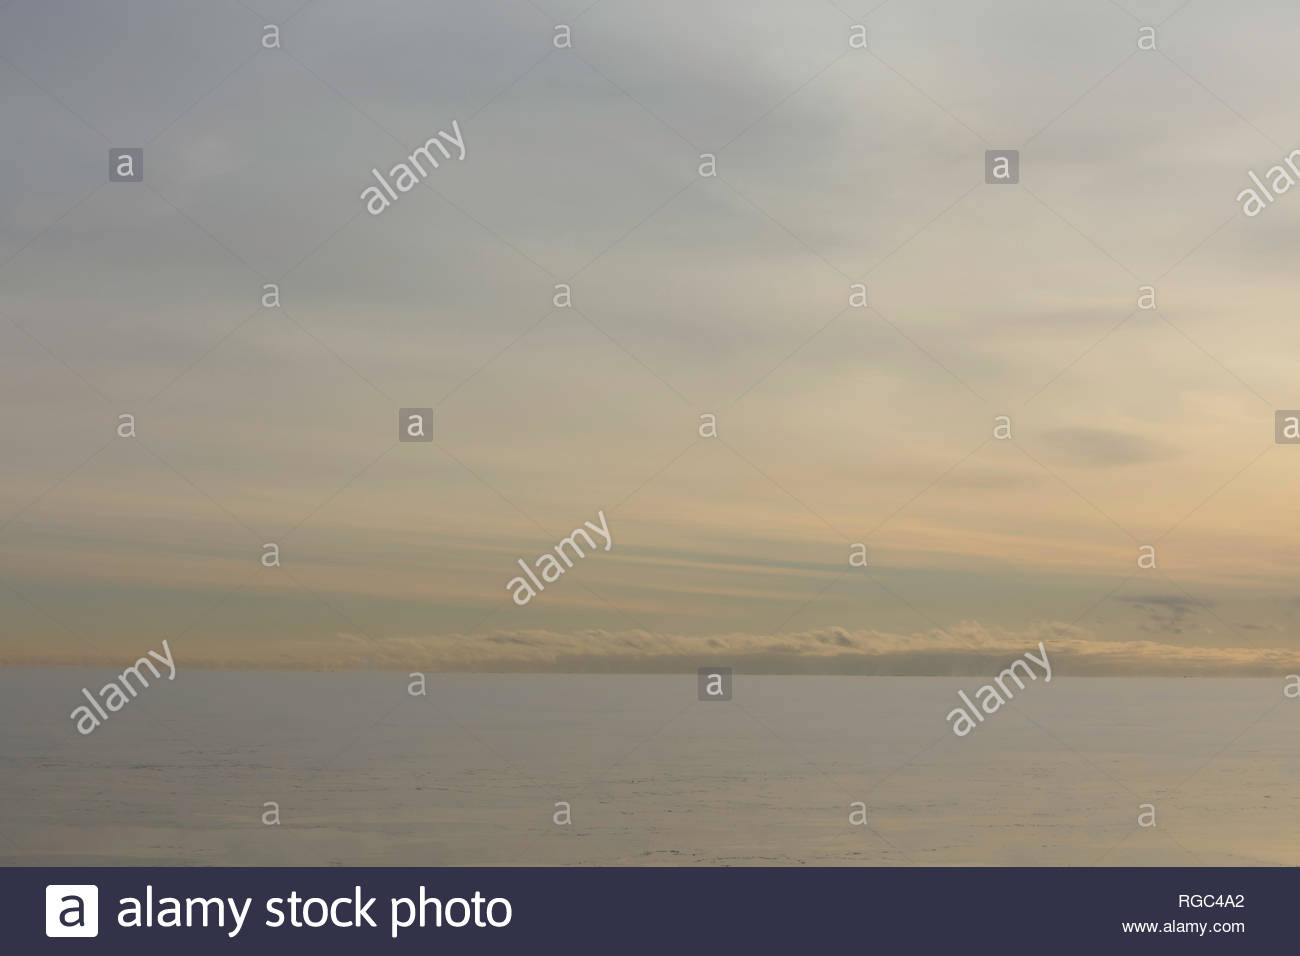 Soft thin transparent overcast cloudy sky over Lake Ontario in Ontario Canada - Stock Image